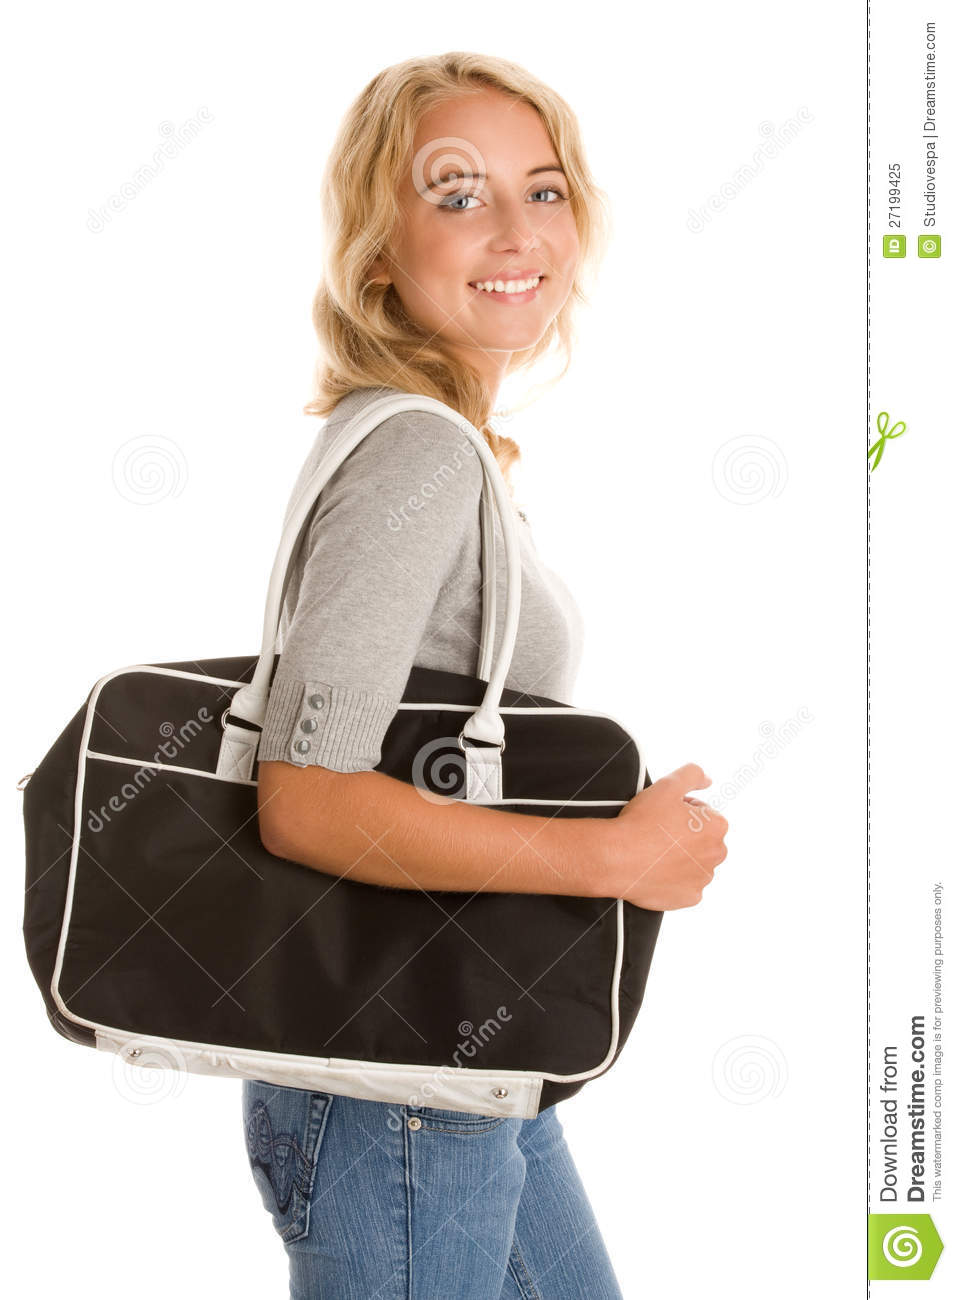 Woman With Bag Royalty Free Stock Photo - Image: 27199425